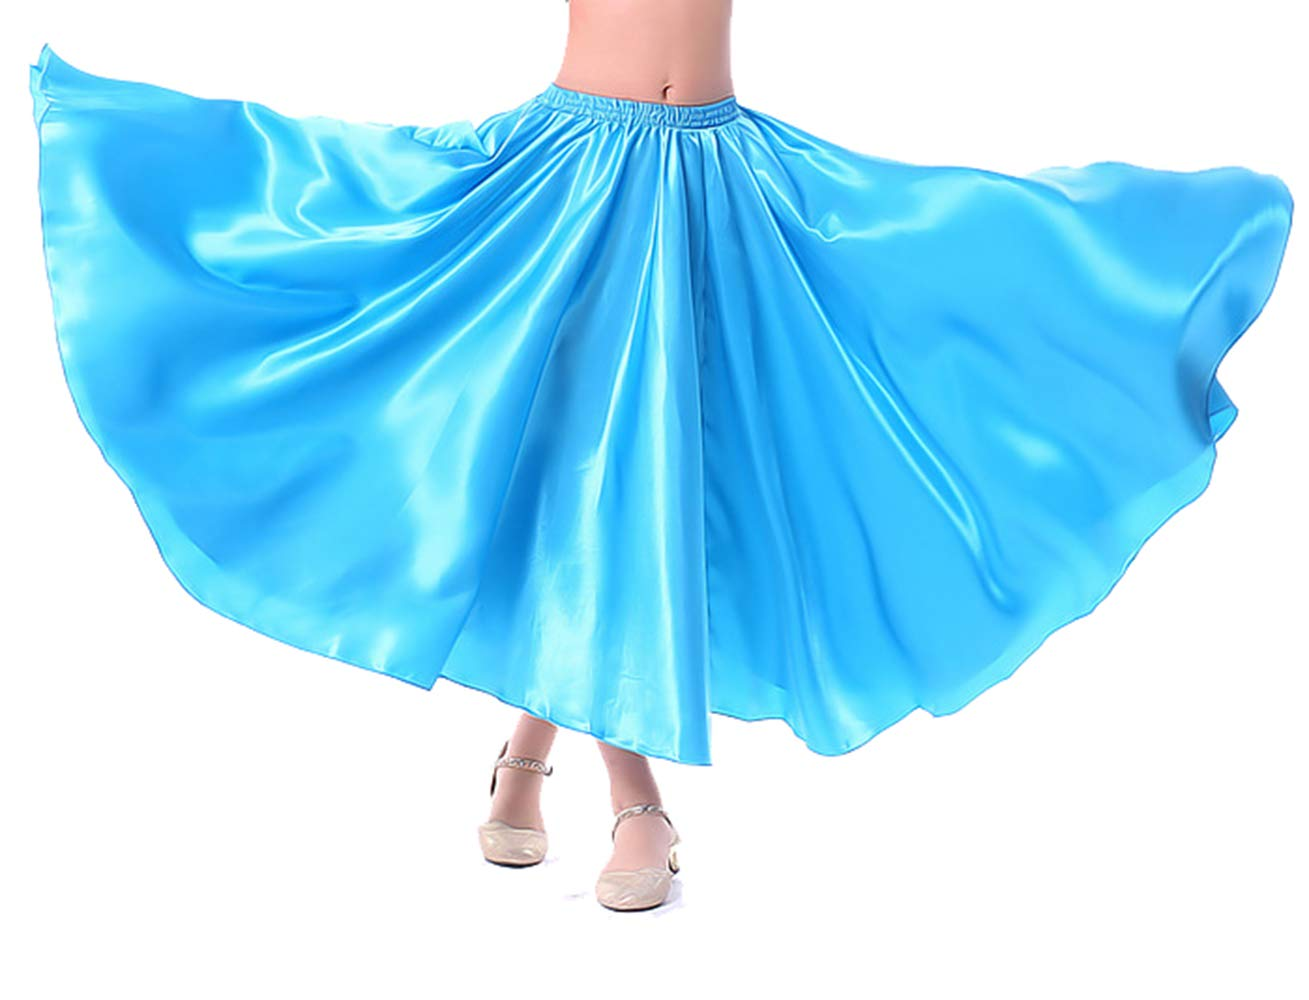 Lauthen.S Kids Gilrs Skirt for Belly Dance/Performance/Halloween Party, Satin Full Circle Tribal Skirt(Blue,S) by Lauthen.S